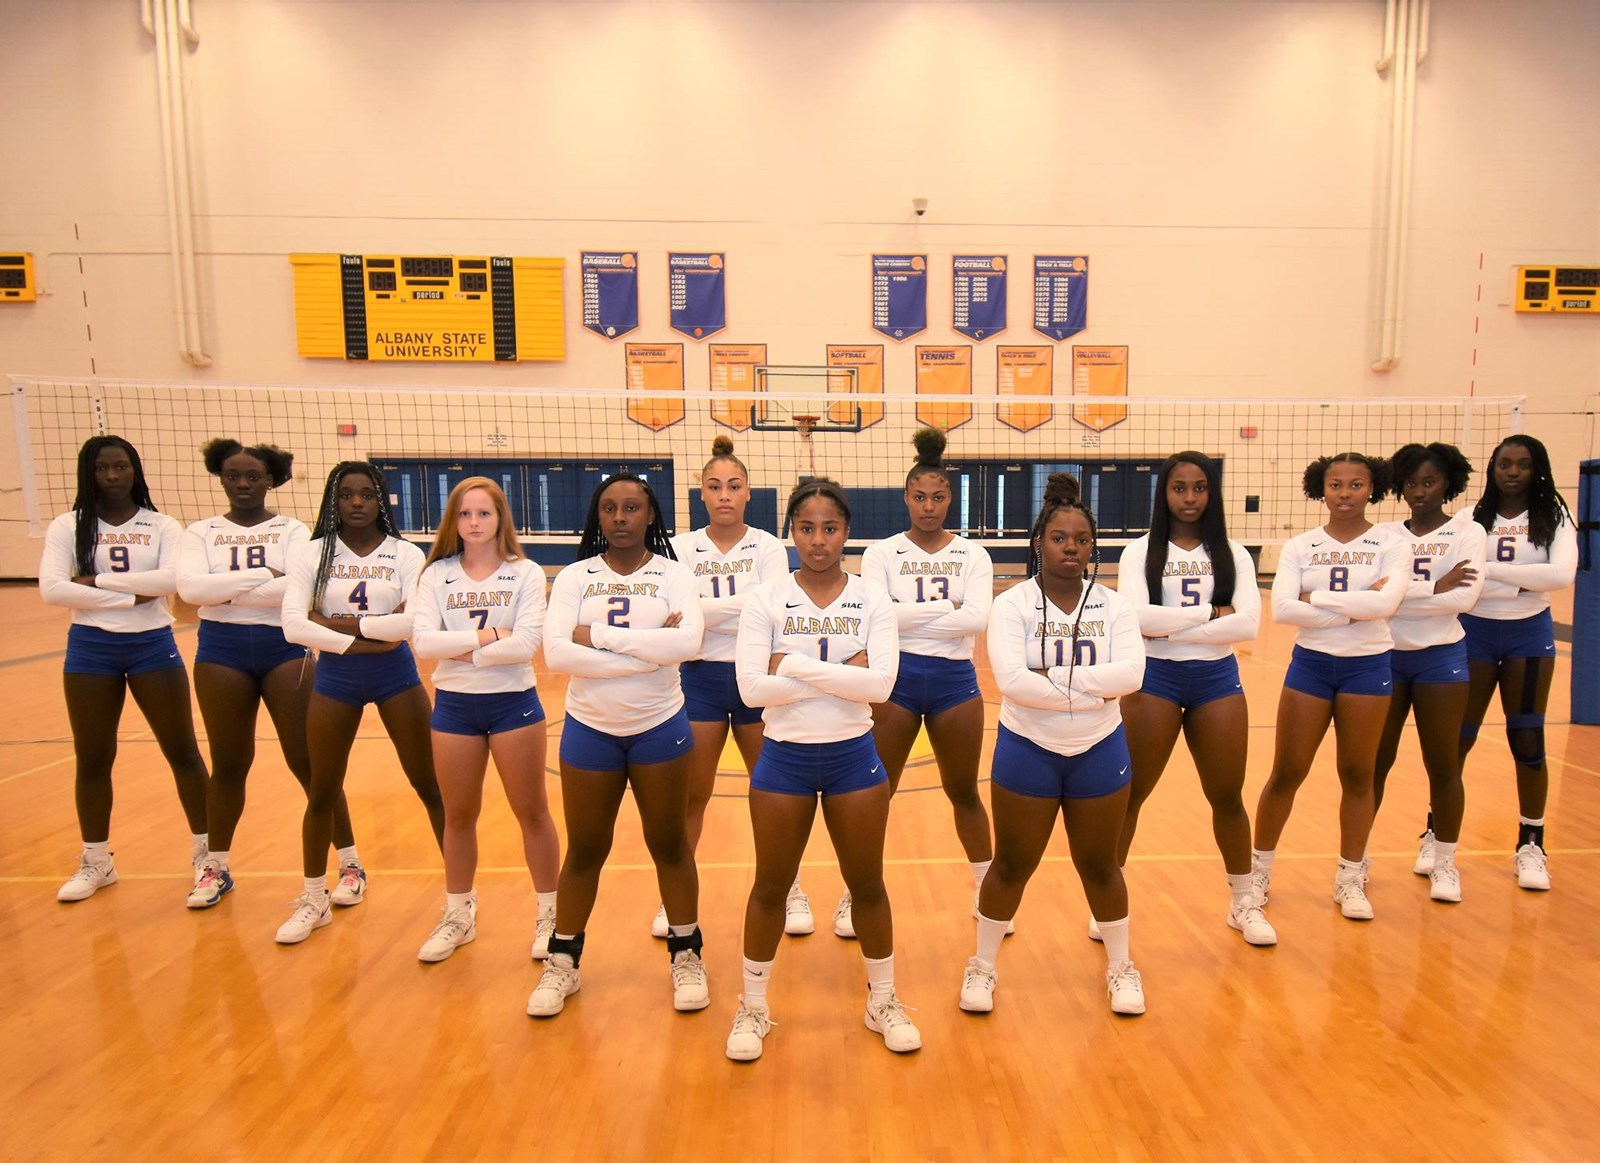 2019 Women S Volleyball Roster Albany State University Athletics